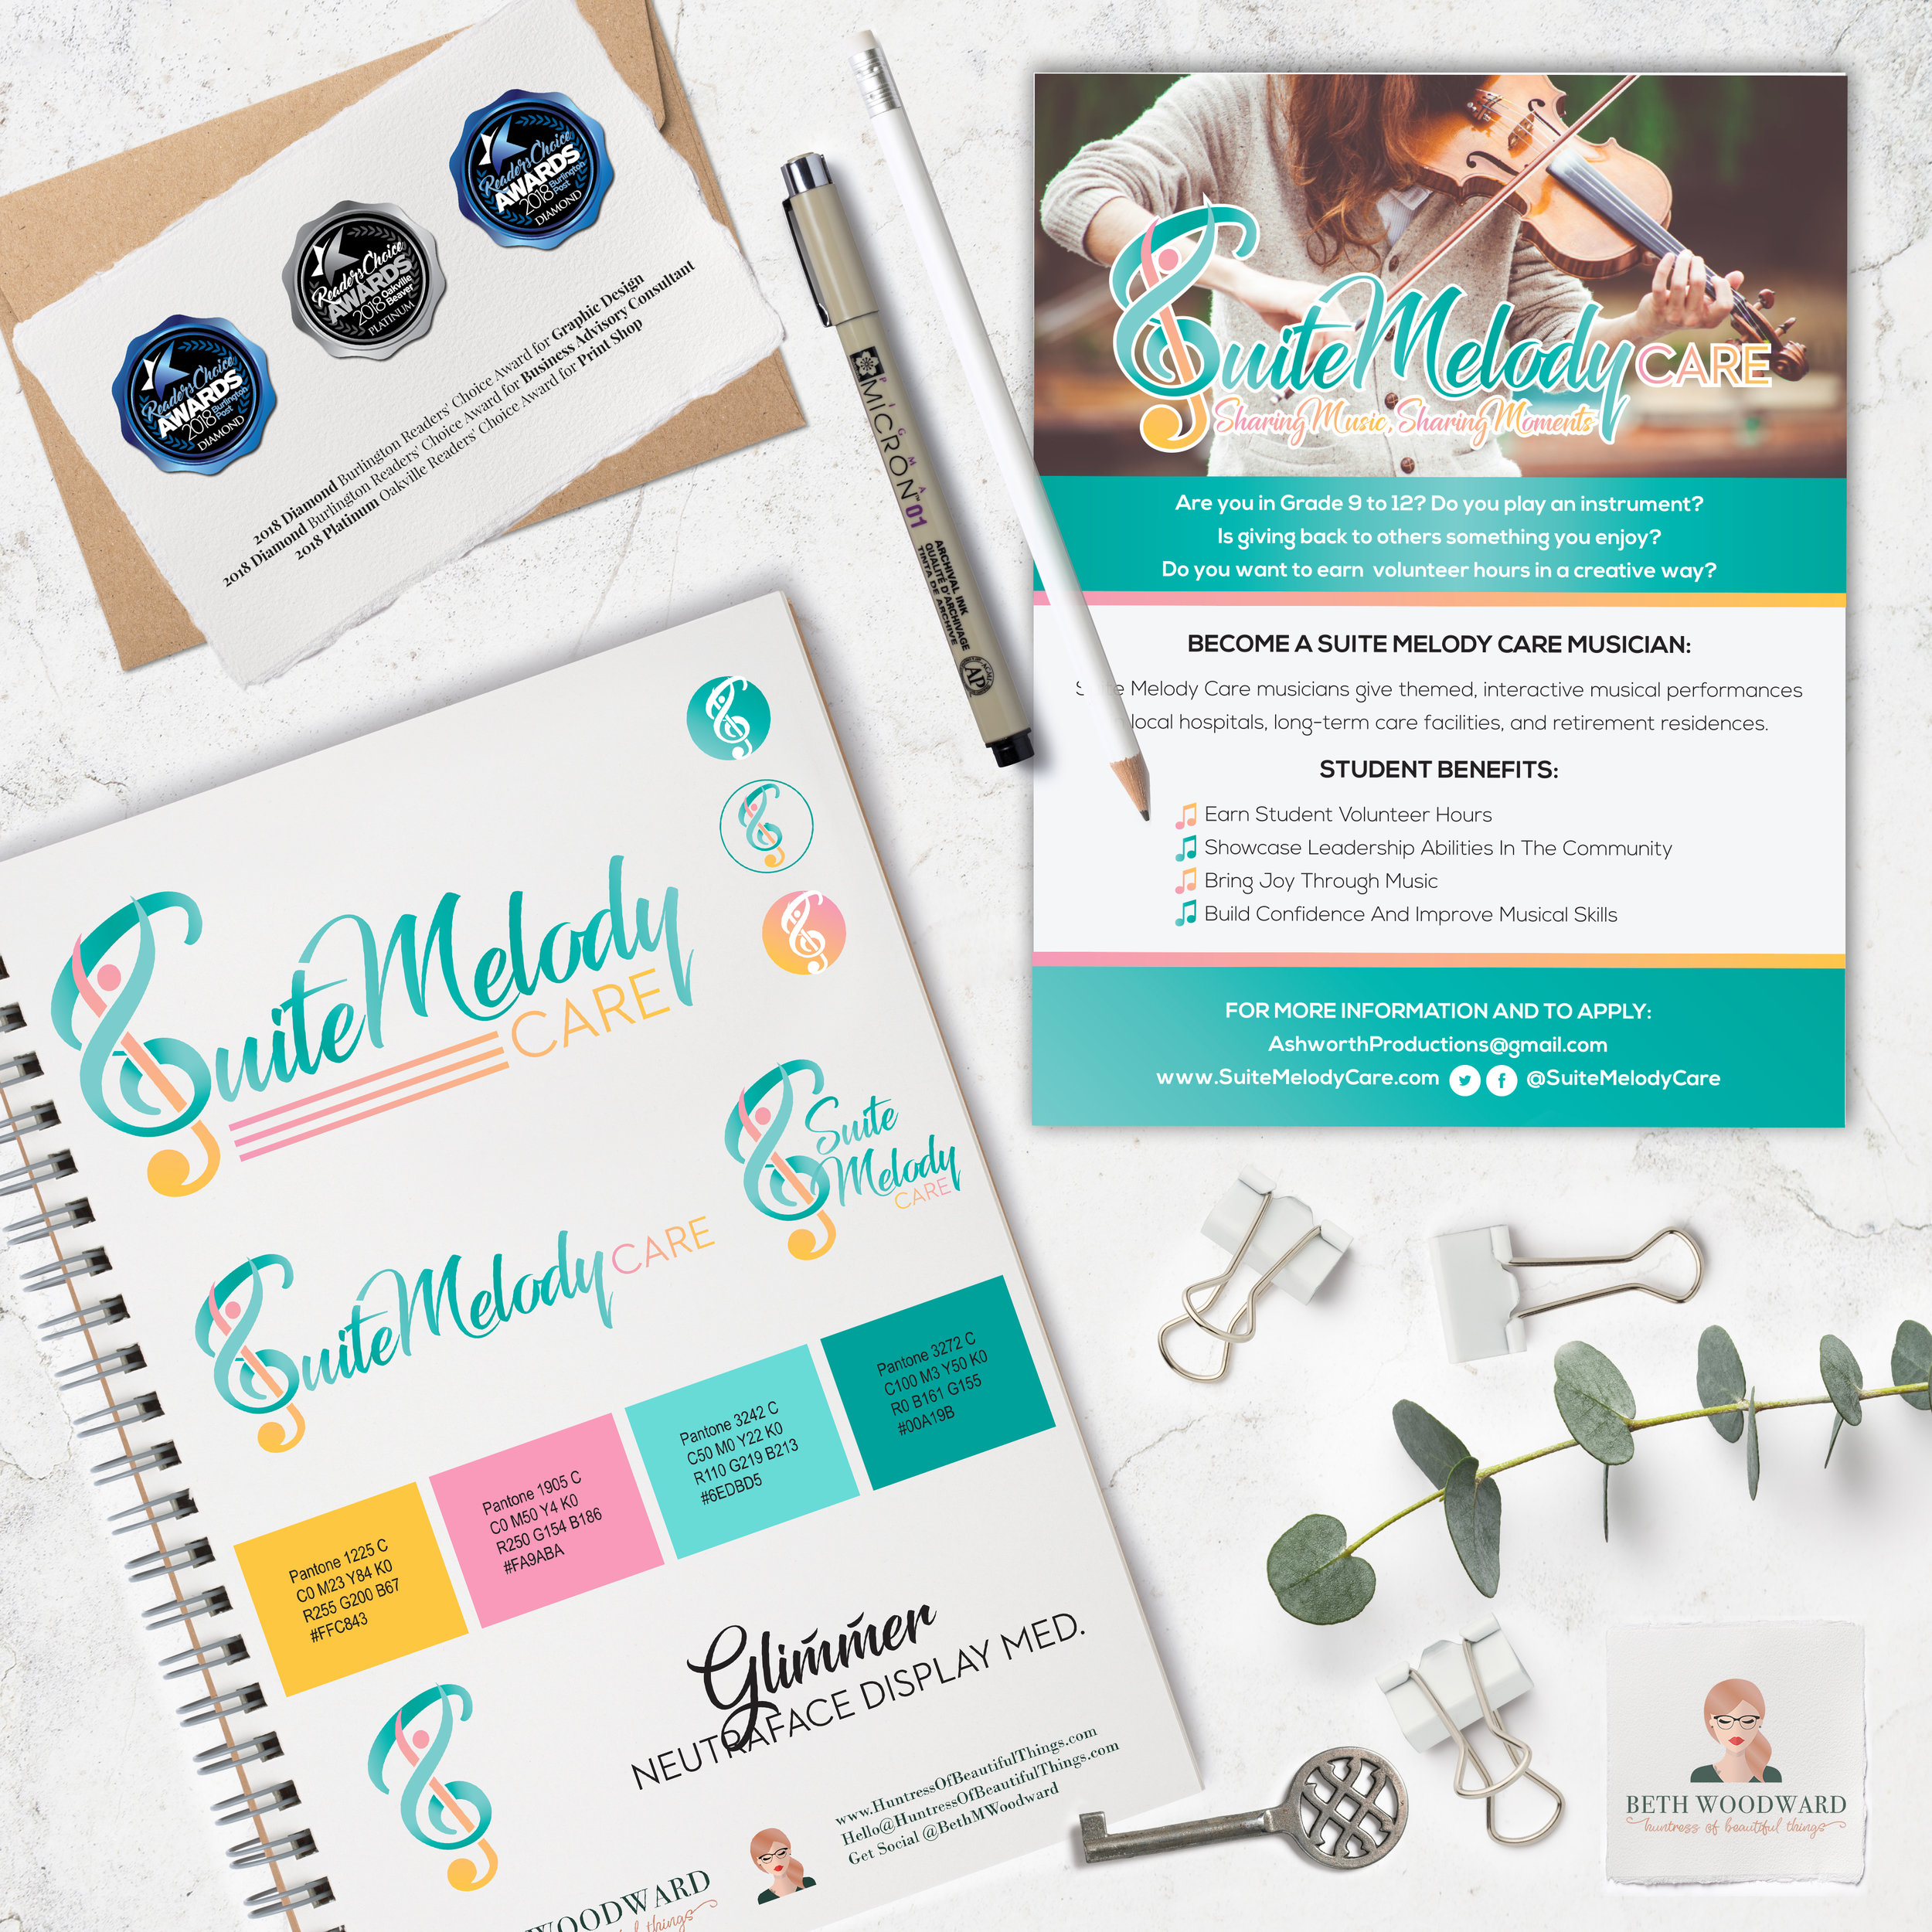 """Design was clean, professional, and eye-catching."" - Working with Beth to create a fresh look for the Suite Melody Care program was a complete delight! She completely"